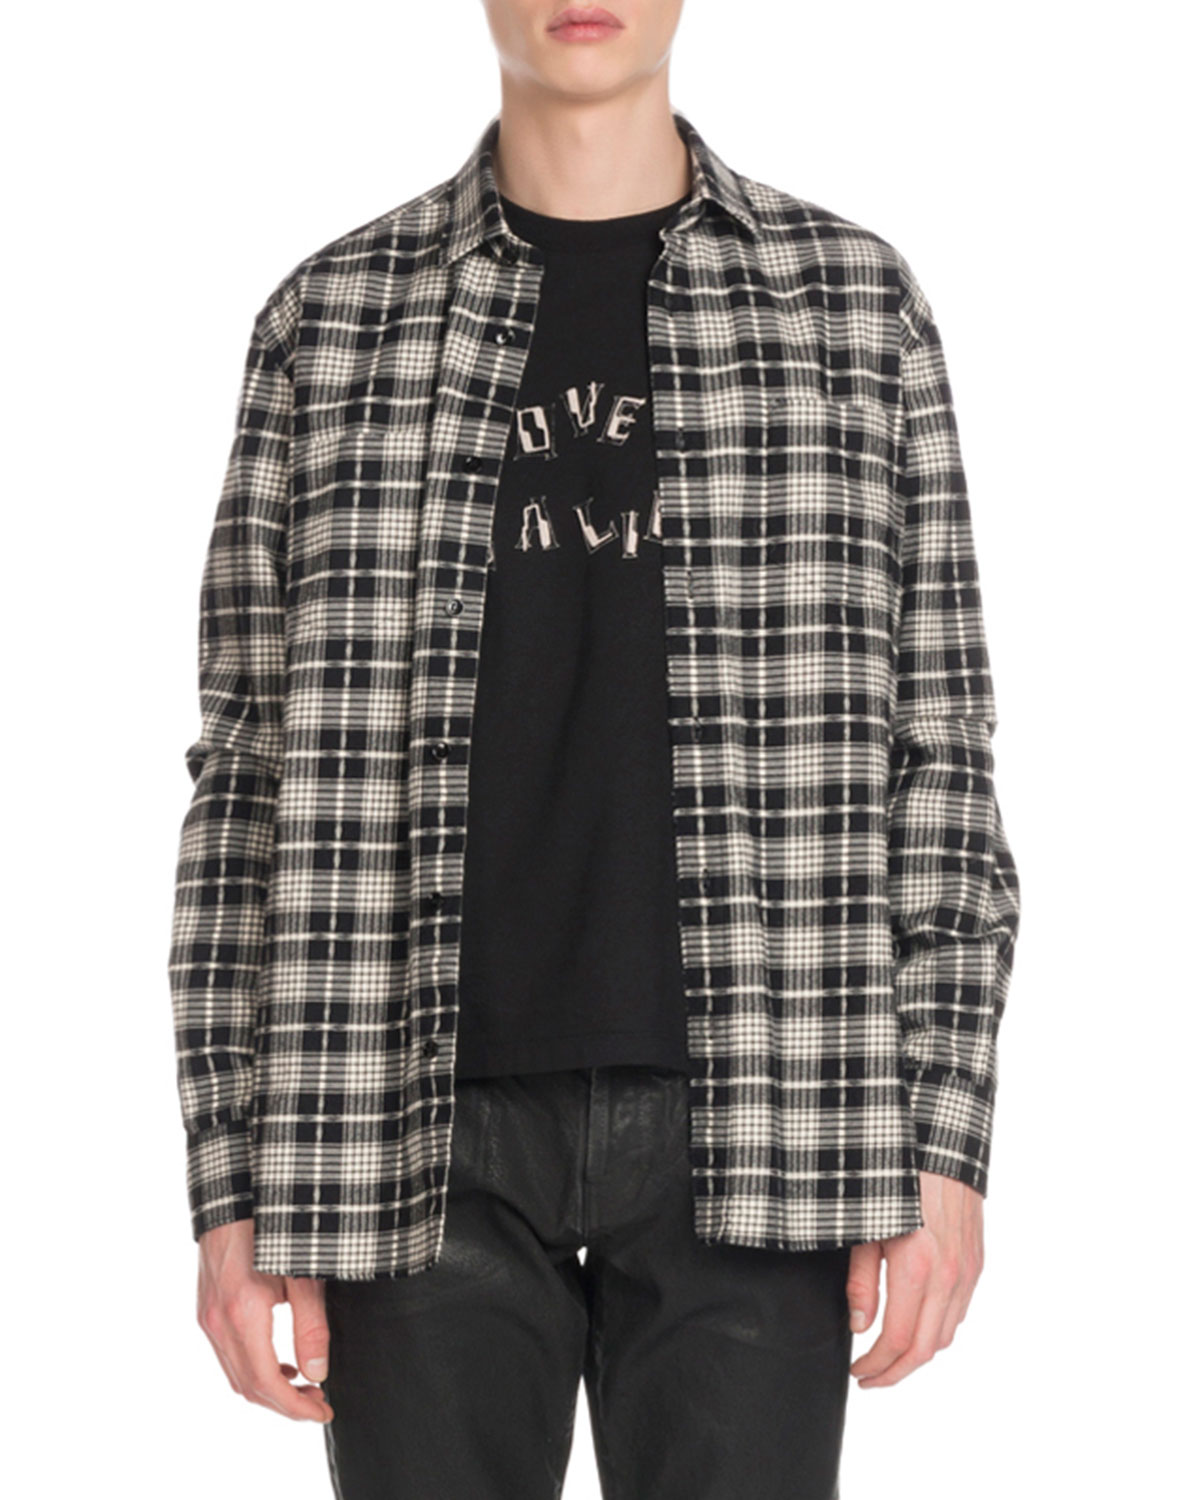 Men's Cotton/Wool Plaid Flannel Shirt